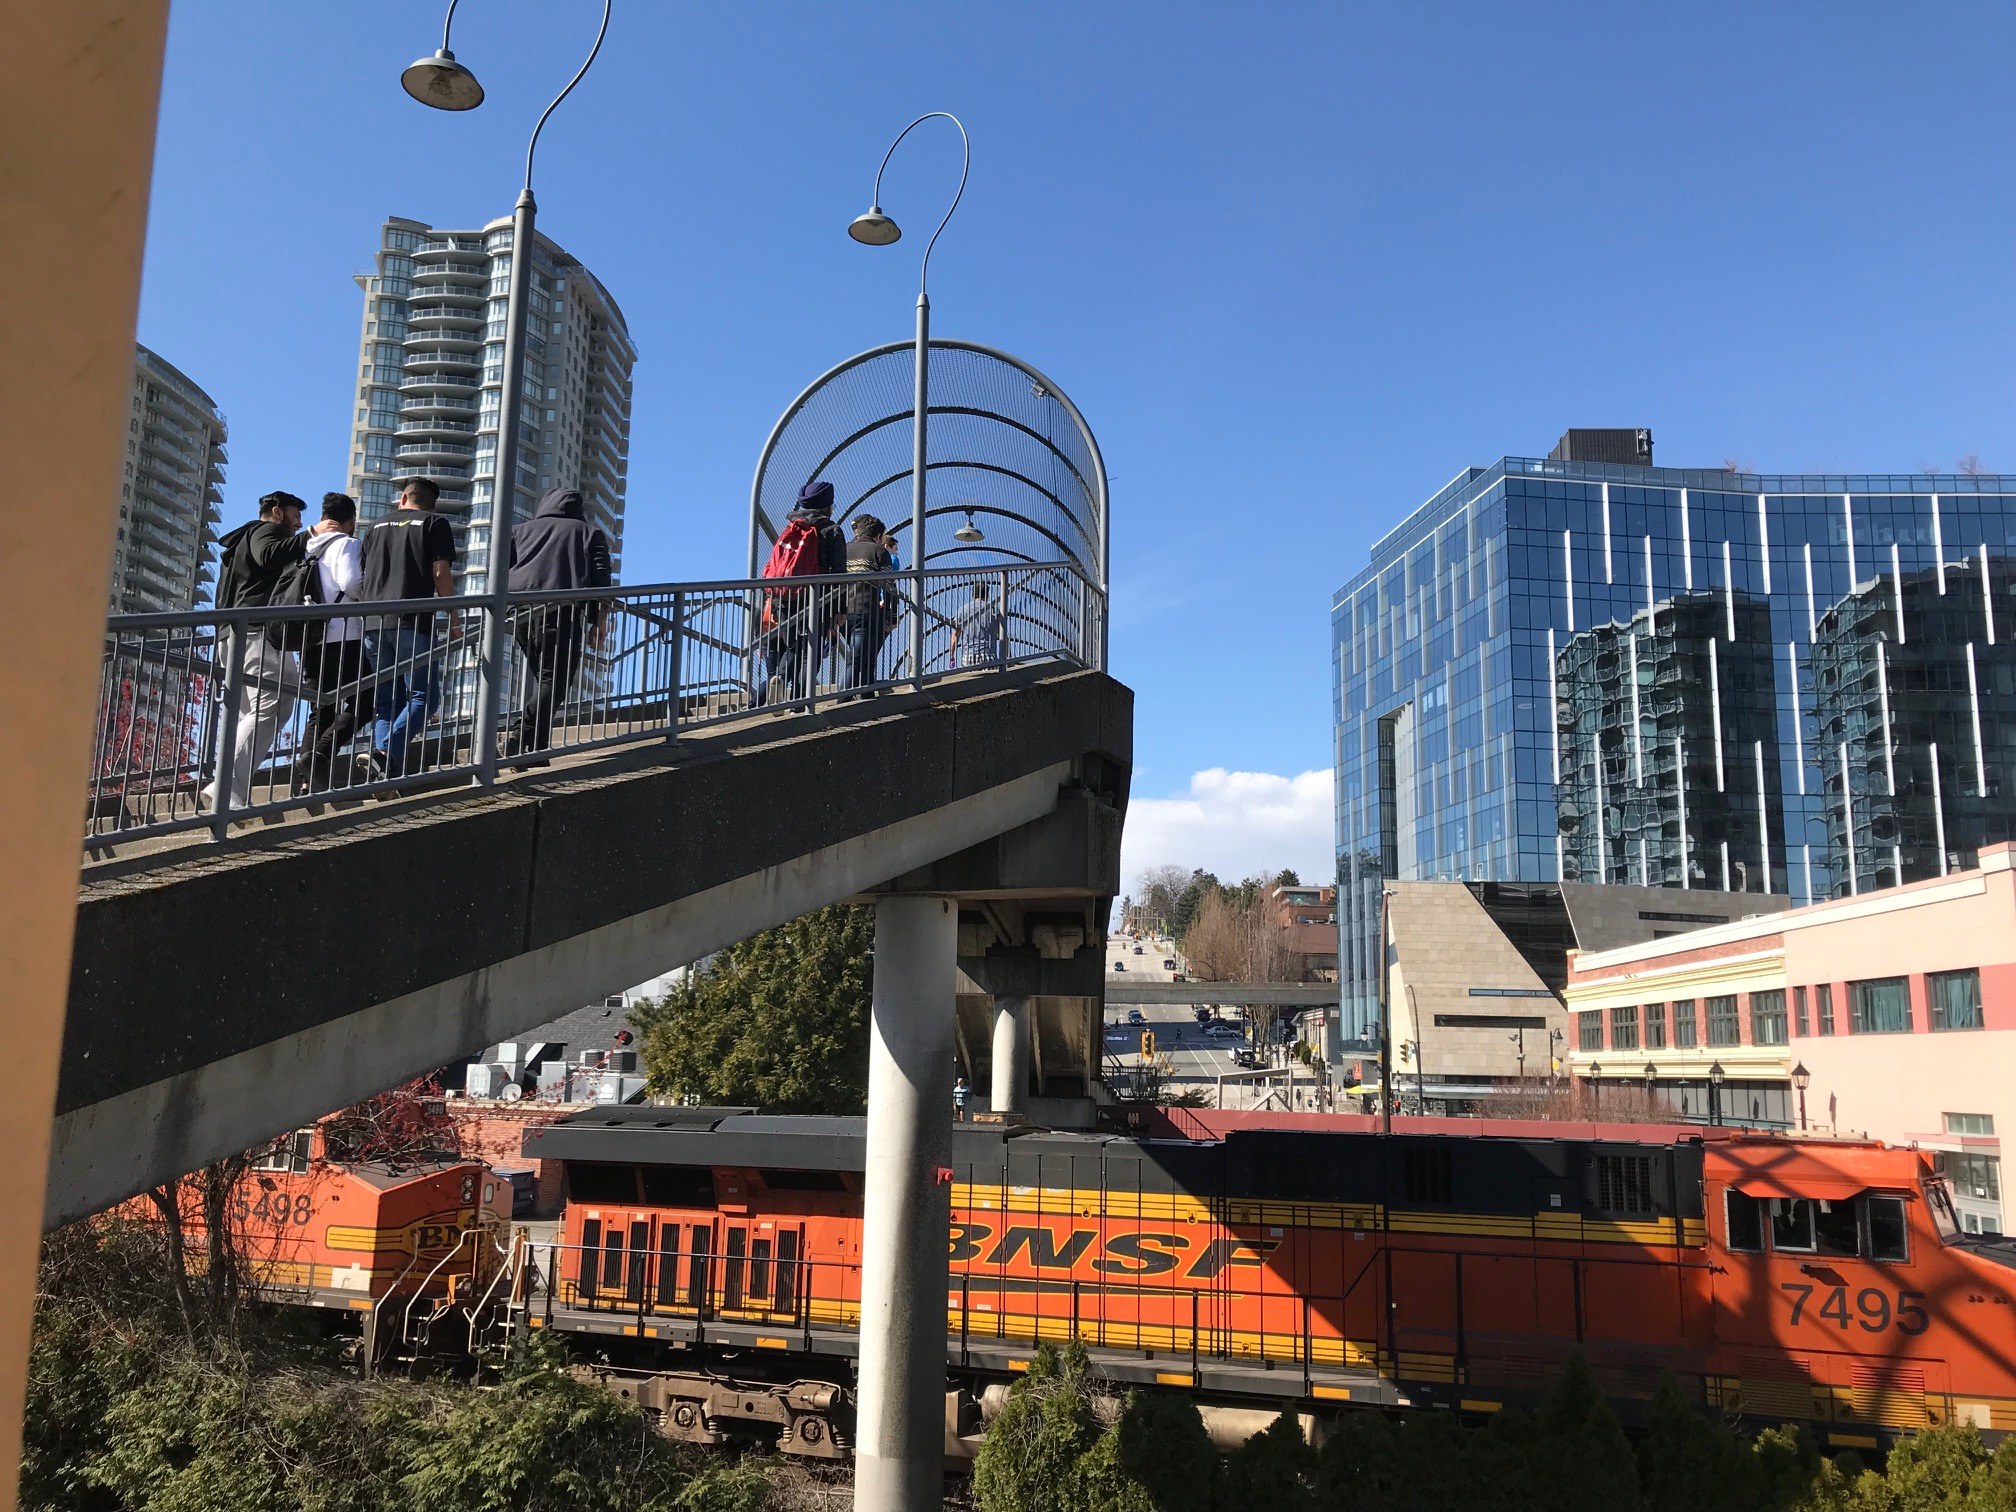 The New Westminster SkyTrain station is right next to heavy train tracks, like the south leg of Calgary's LRT but they have managed to still create urban village next to the tracks.